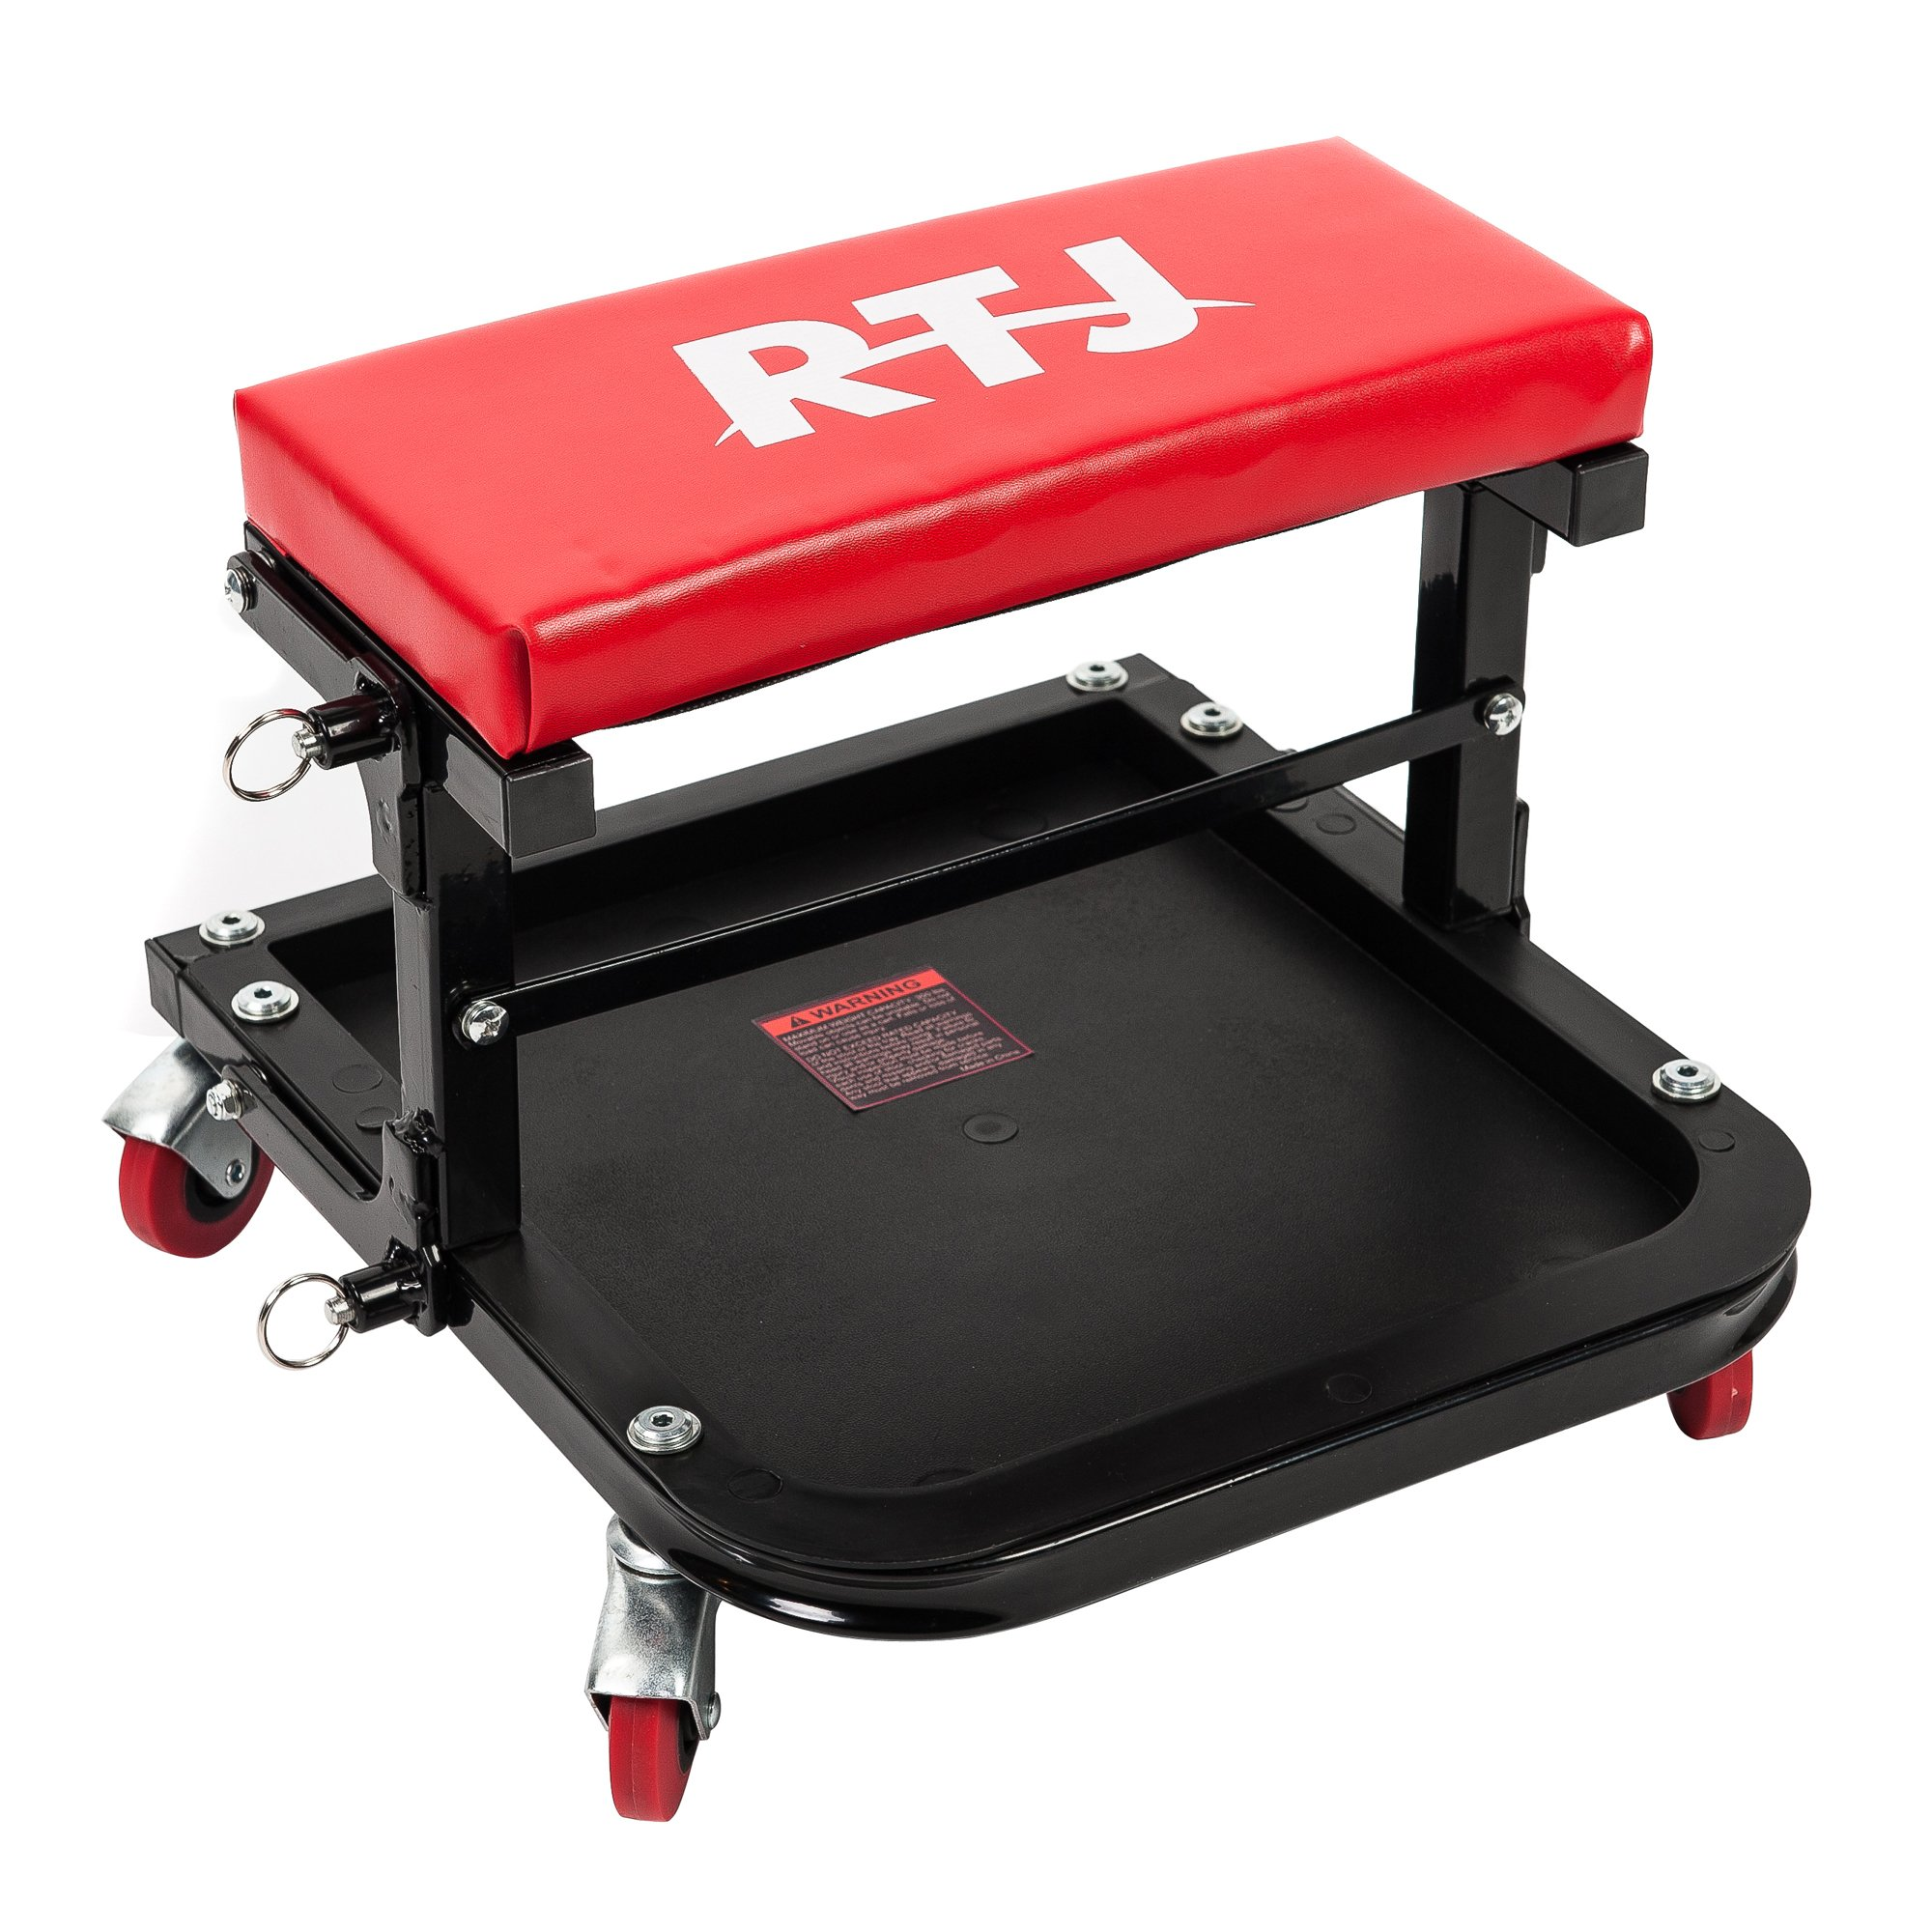 RTJ 300 lbs Capacity Foldable Mechanic Roller Seat C-Frame Rolling Stool, Red and Black by RTJ